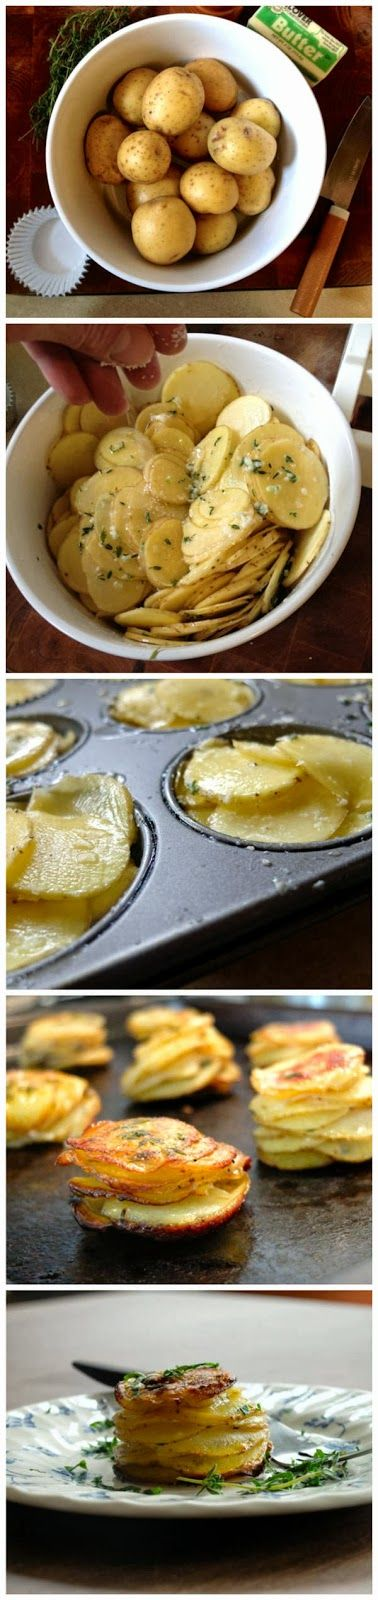 Red Star Recipe: Lil Pomme Anna